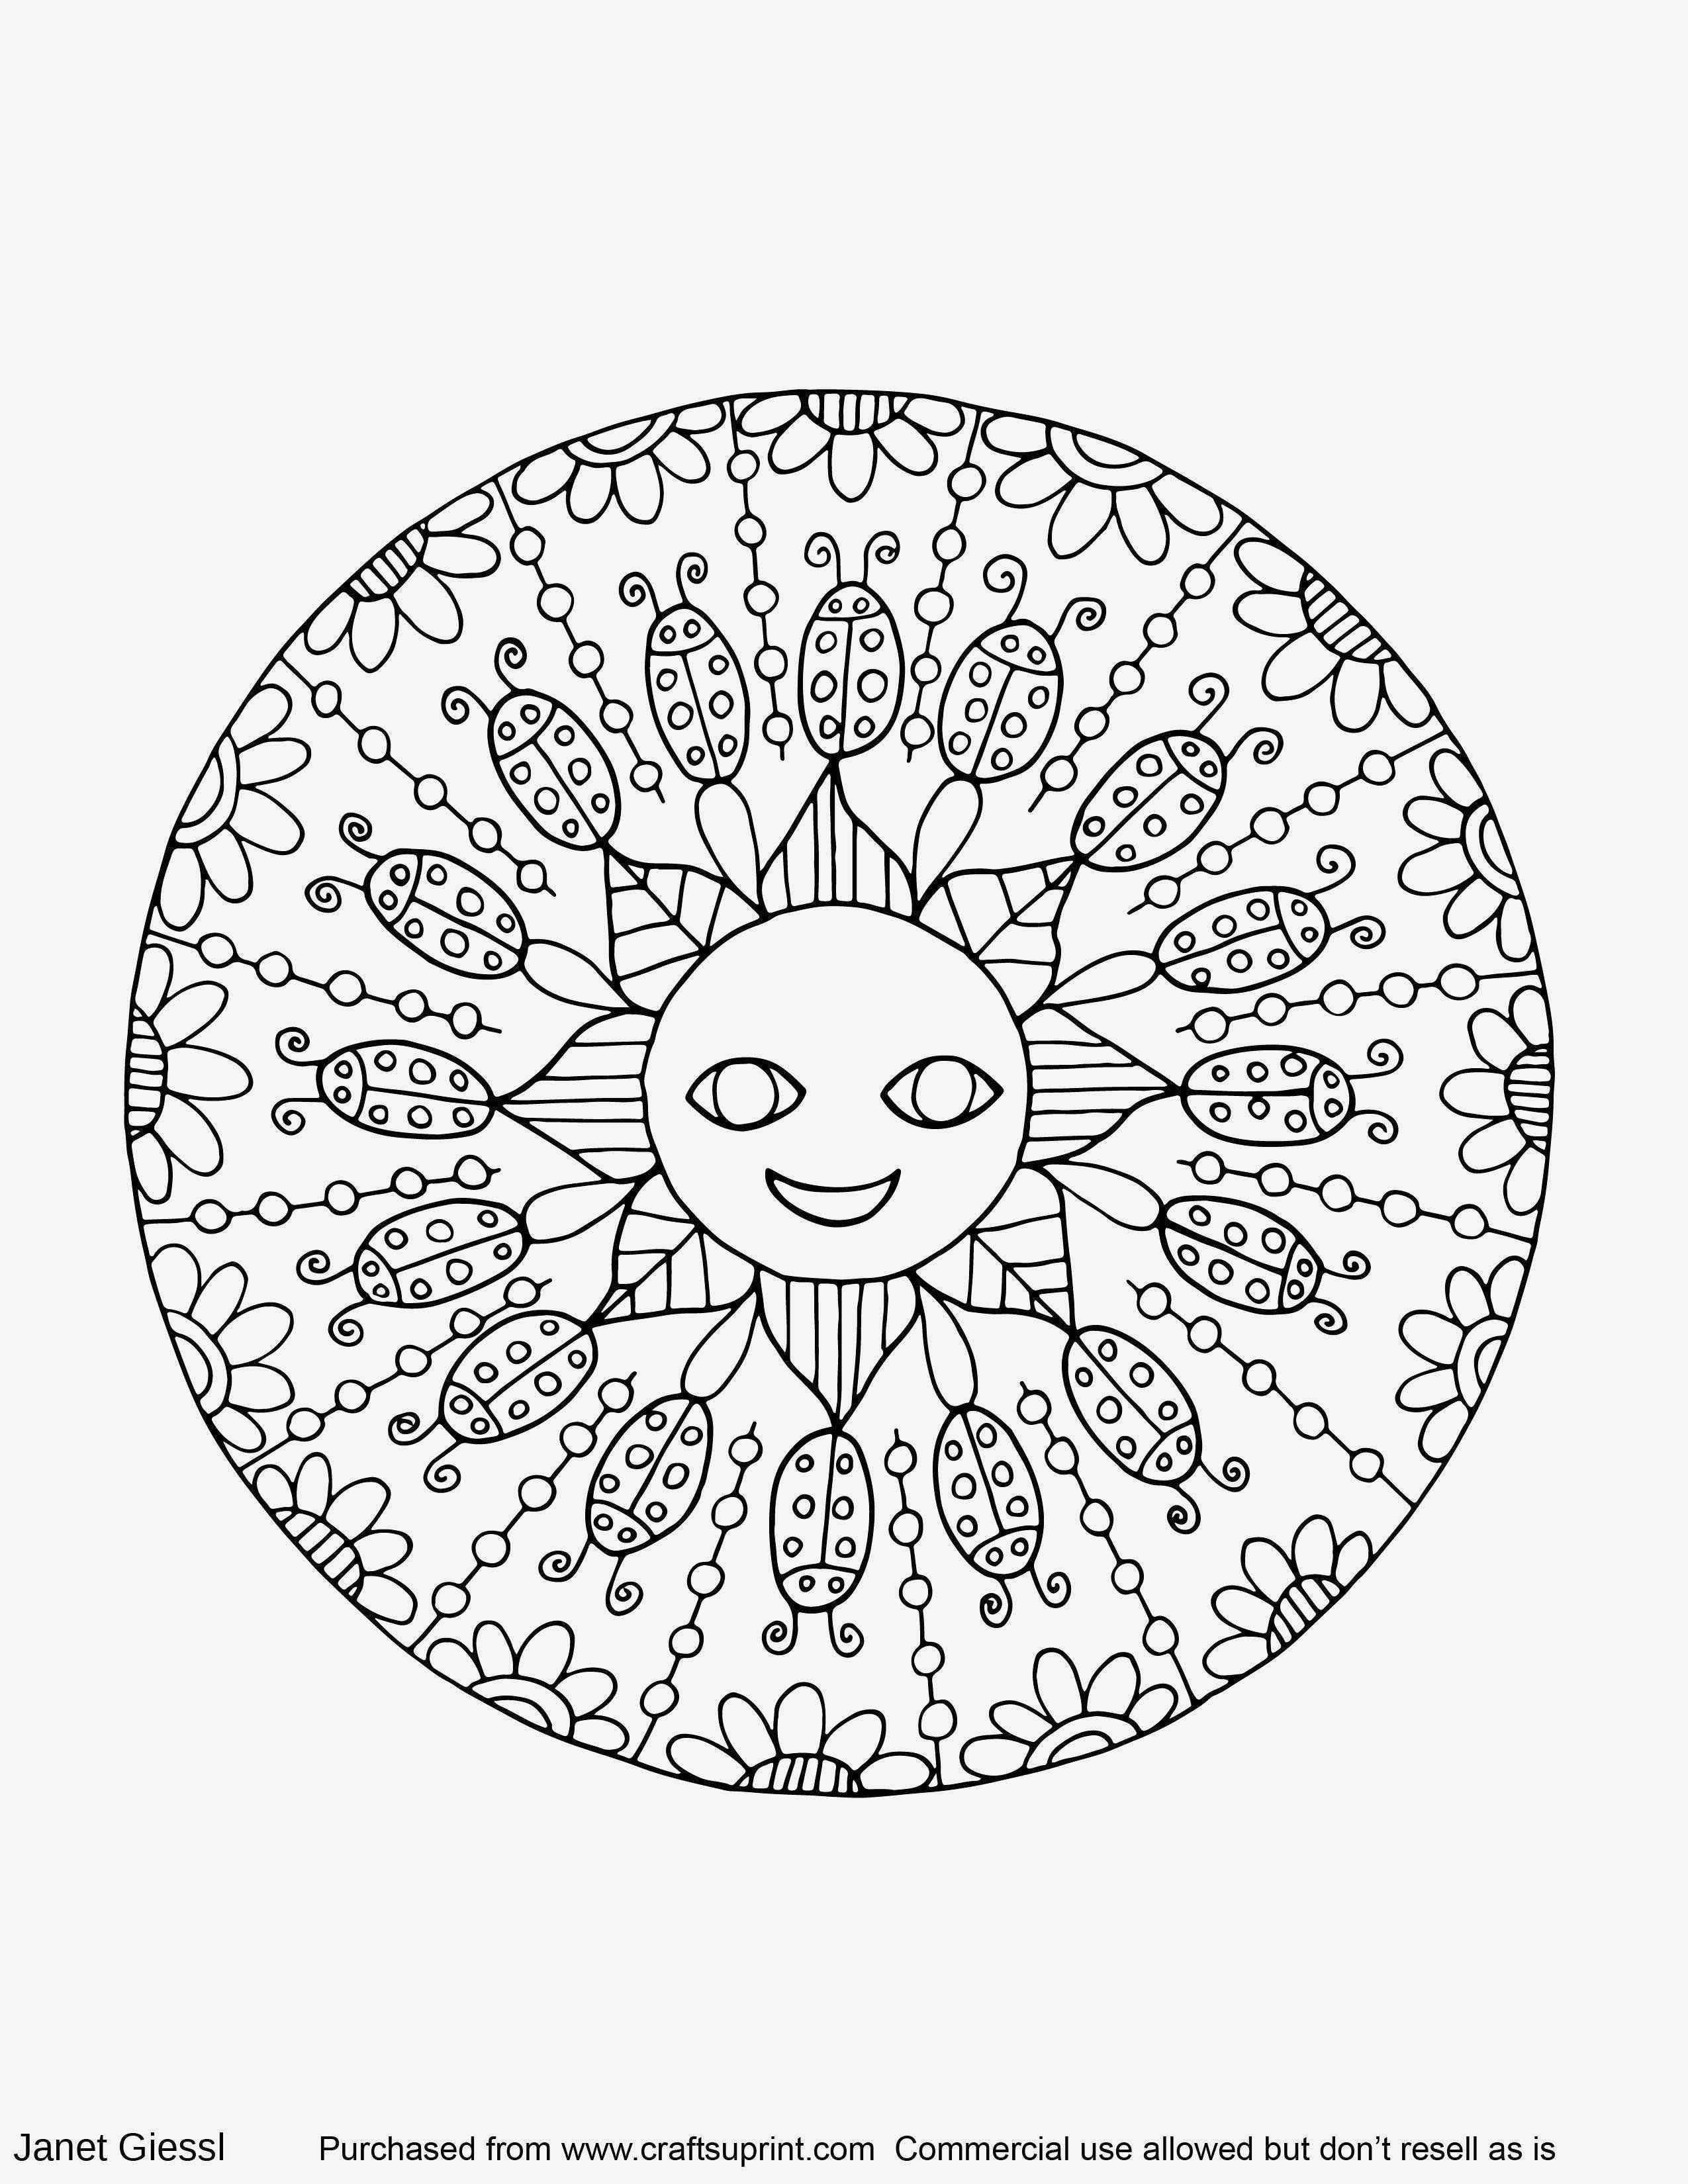 Coloring Book For Me And Mandala New Fresh Mandala Coloring Letters Mermaid Coloring Pages Valentine Coloring Pages Superhero Coloring Pages